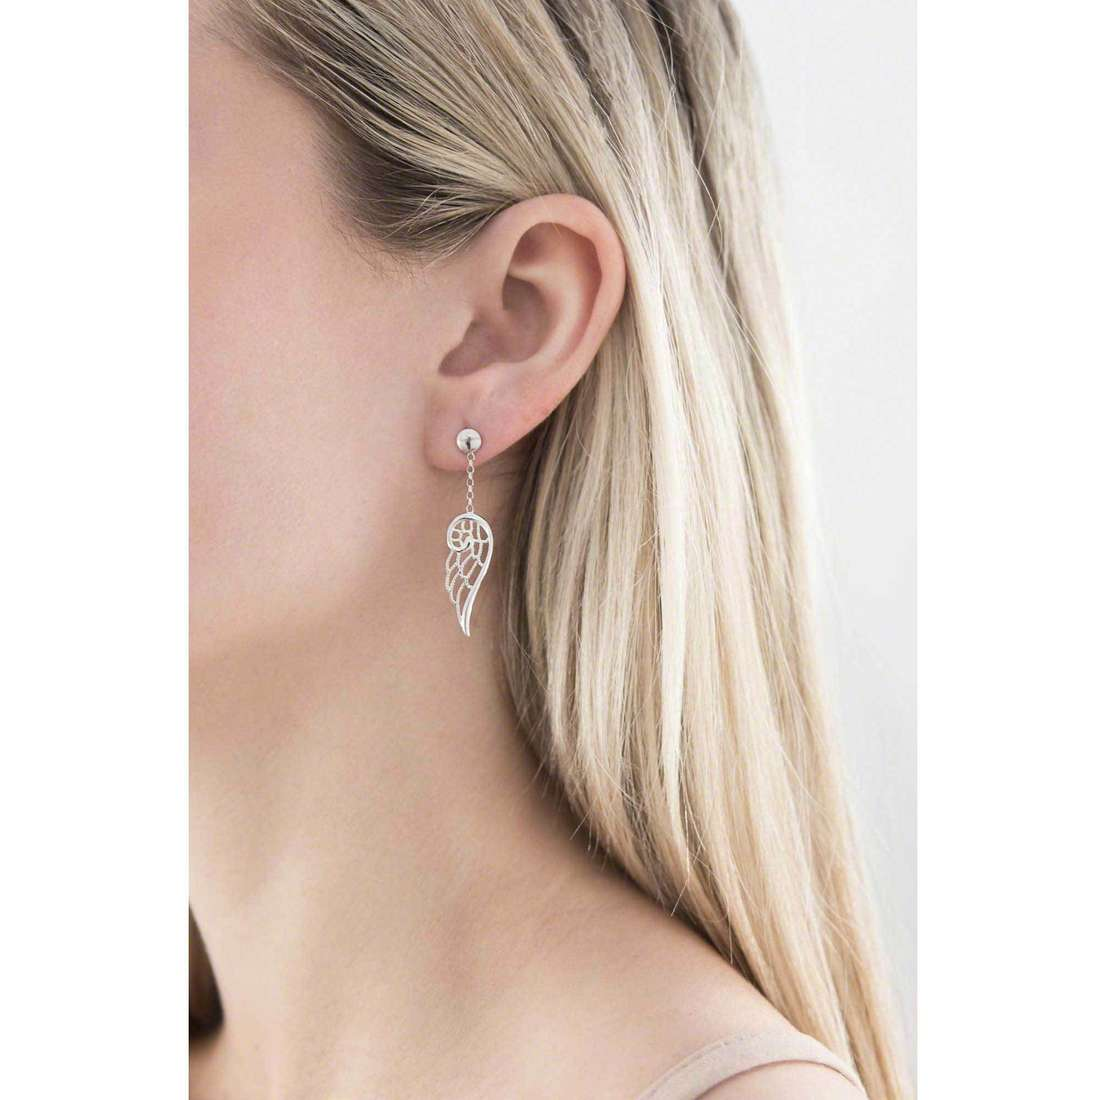 Nomination boucles d'oreille Angel femme 145305/010 indosso